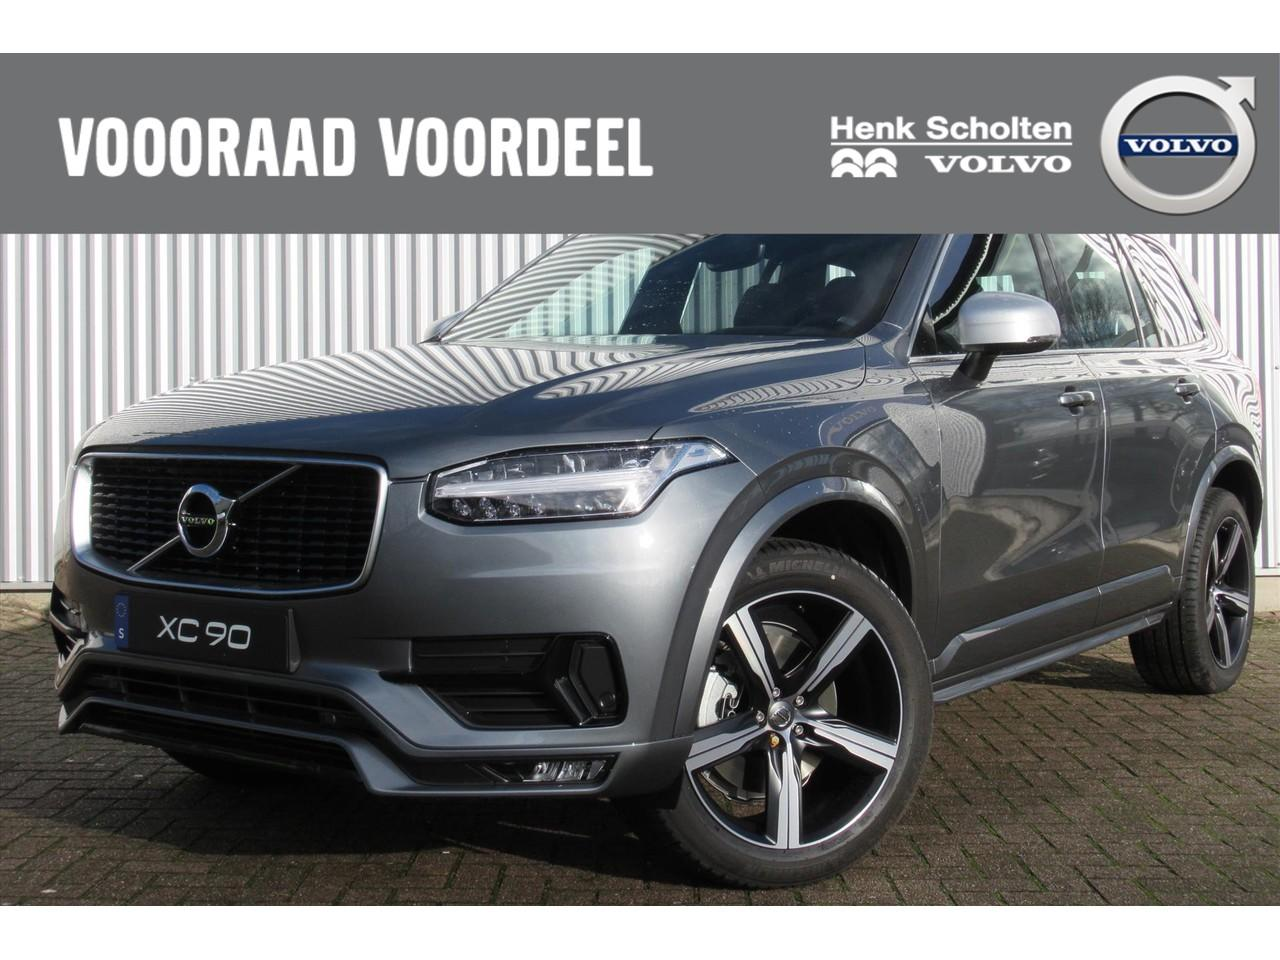 Volvo Xc90 T5 250pk awd r-design, intellisafe, stoelverwarming